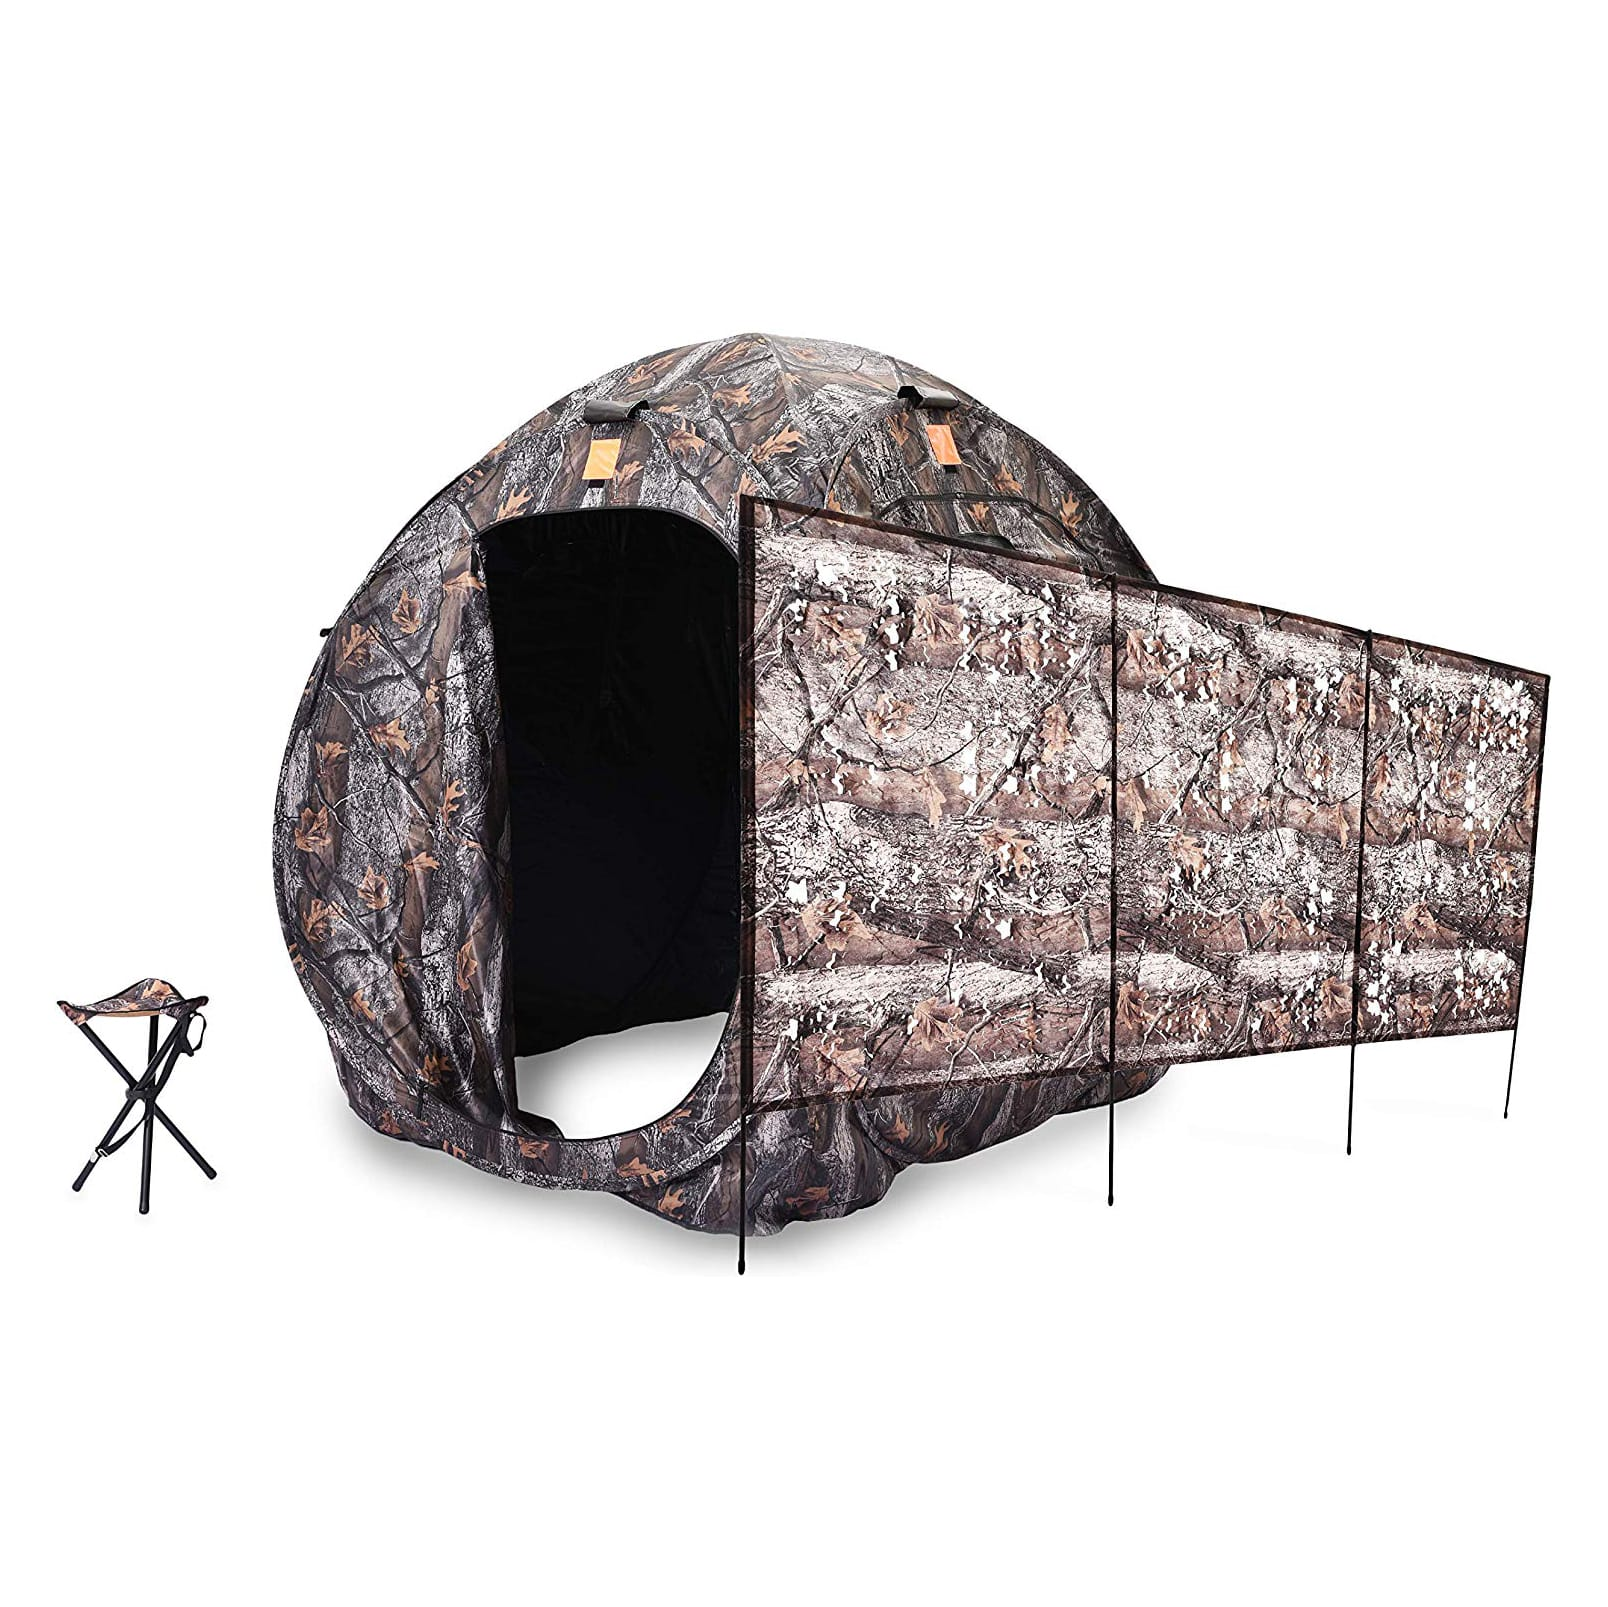 Rukket Hunting Blind - Most portable and versatile